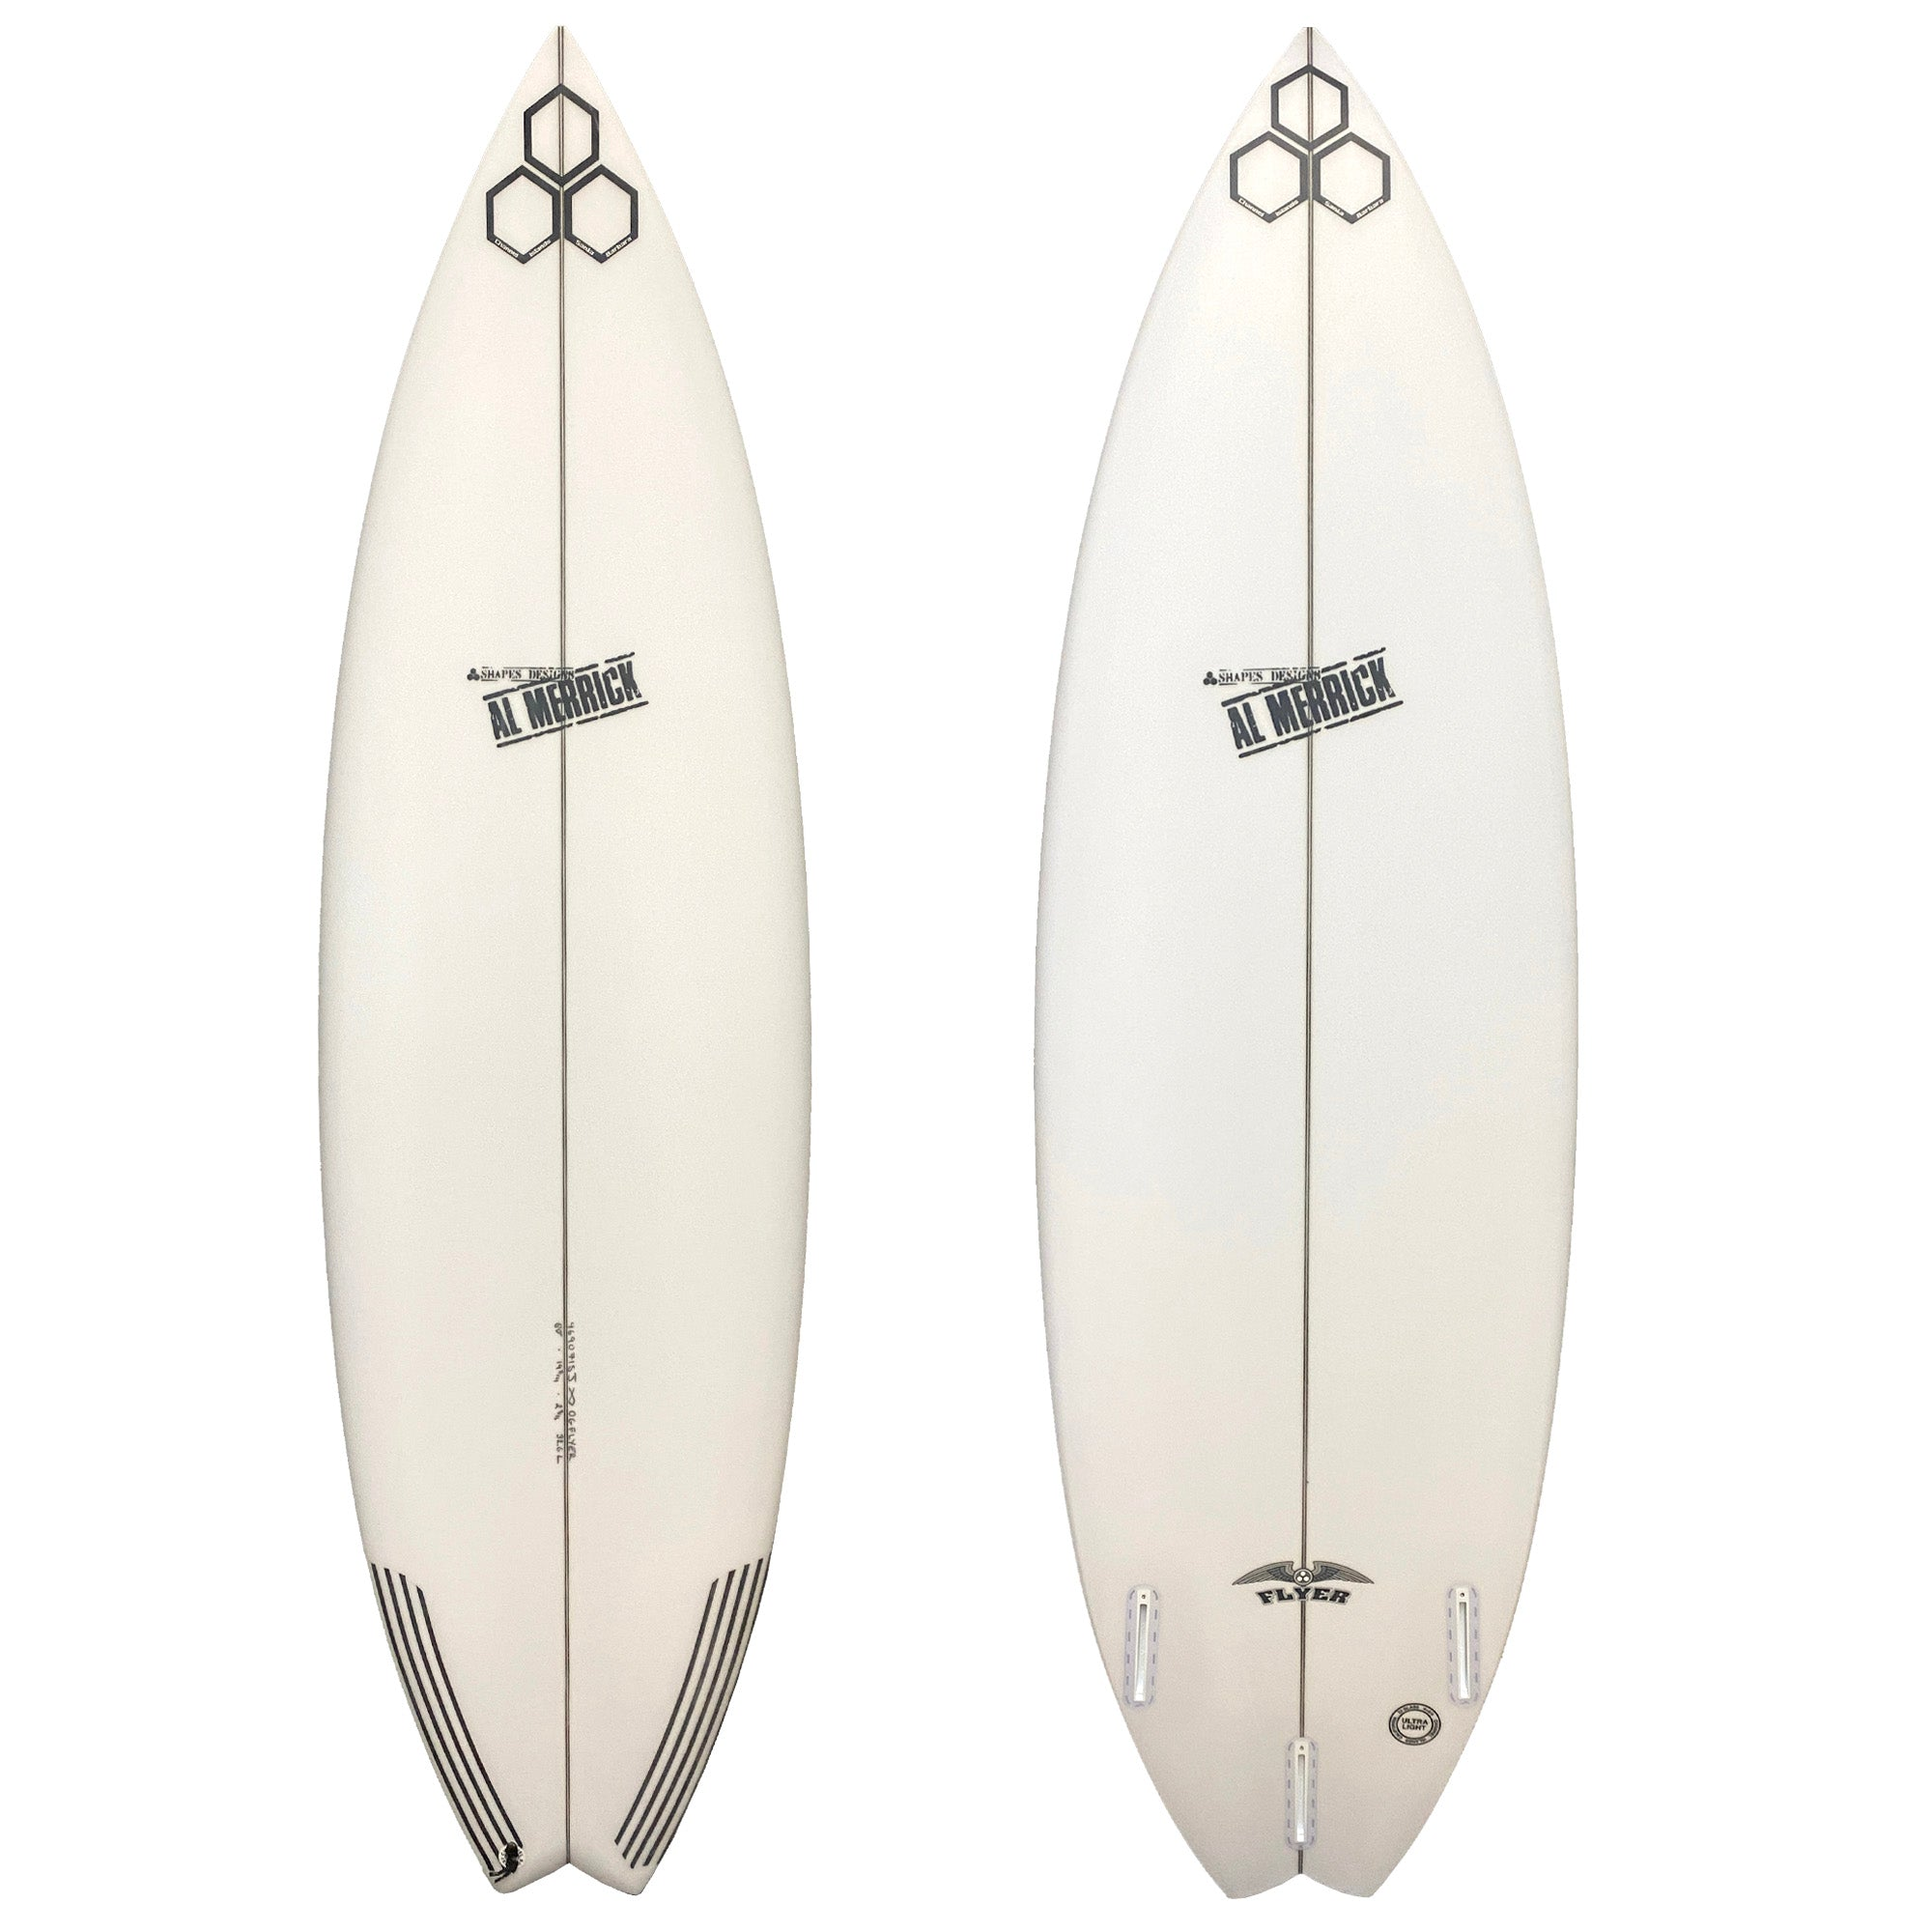 Channel Islands OG Flyer Swallow Surfboard - Futures